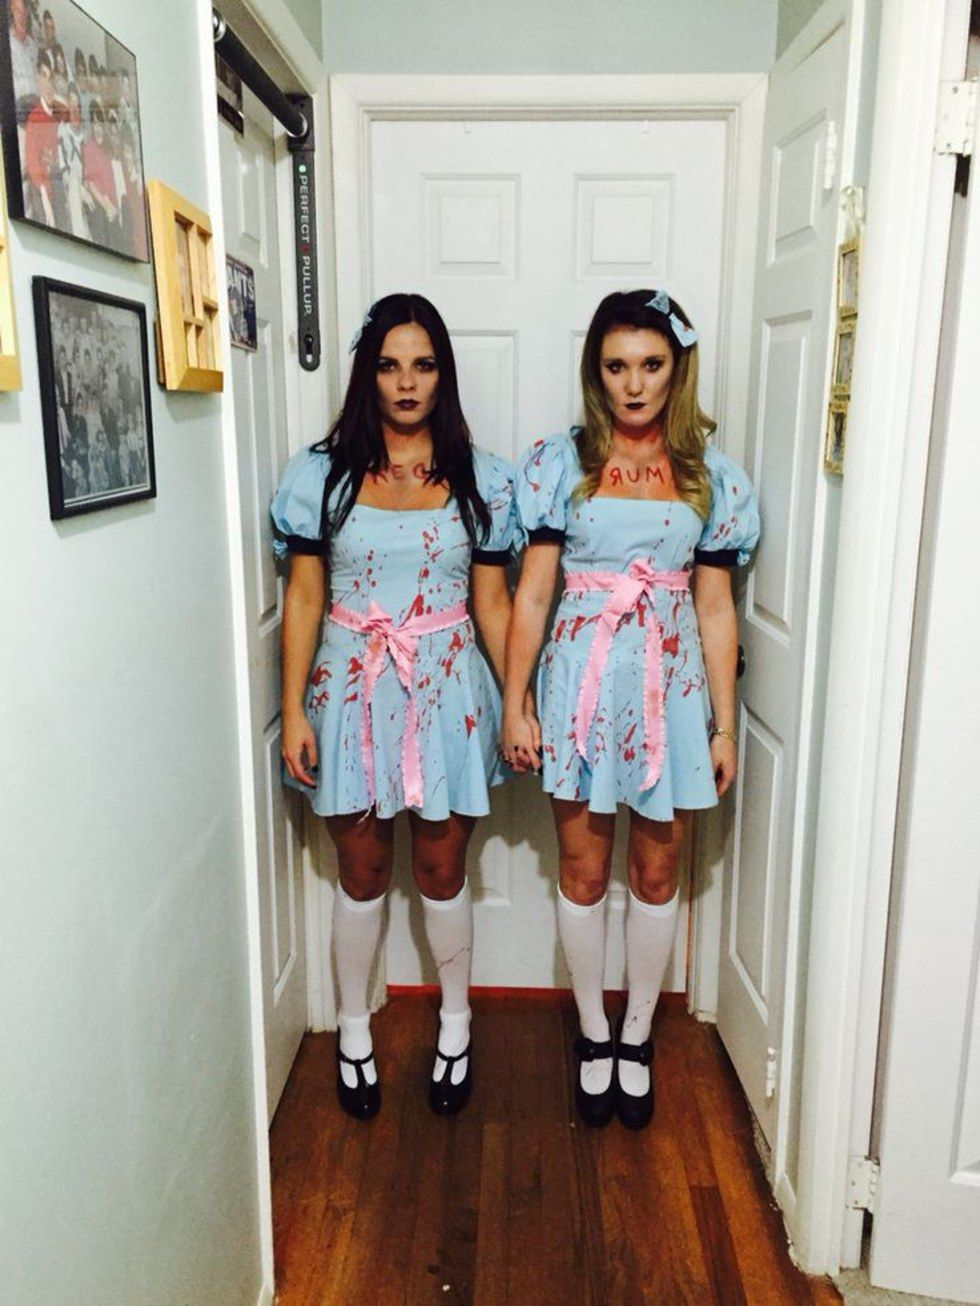 Quatang Gallery- 20 Halloween Ideas For You And Your Best Friend Halloween Costumes Friends Horror Halloween Costumes Duo Halloween Costumes